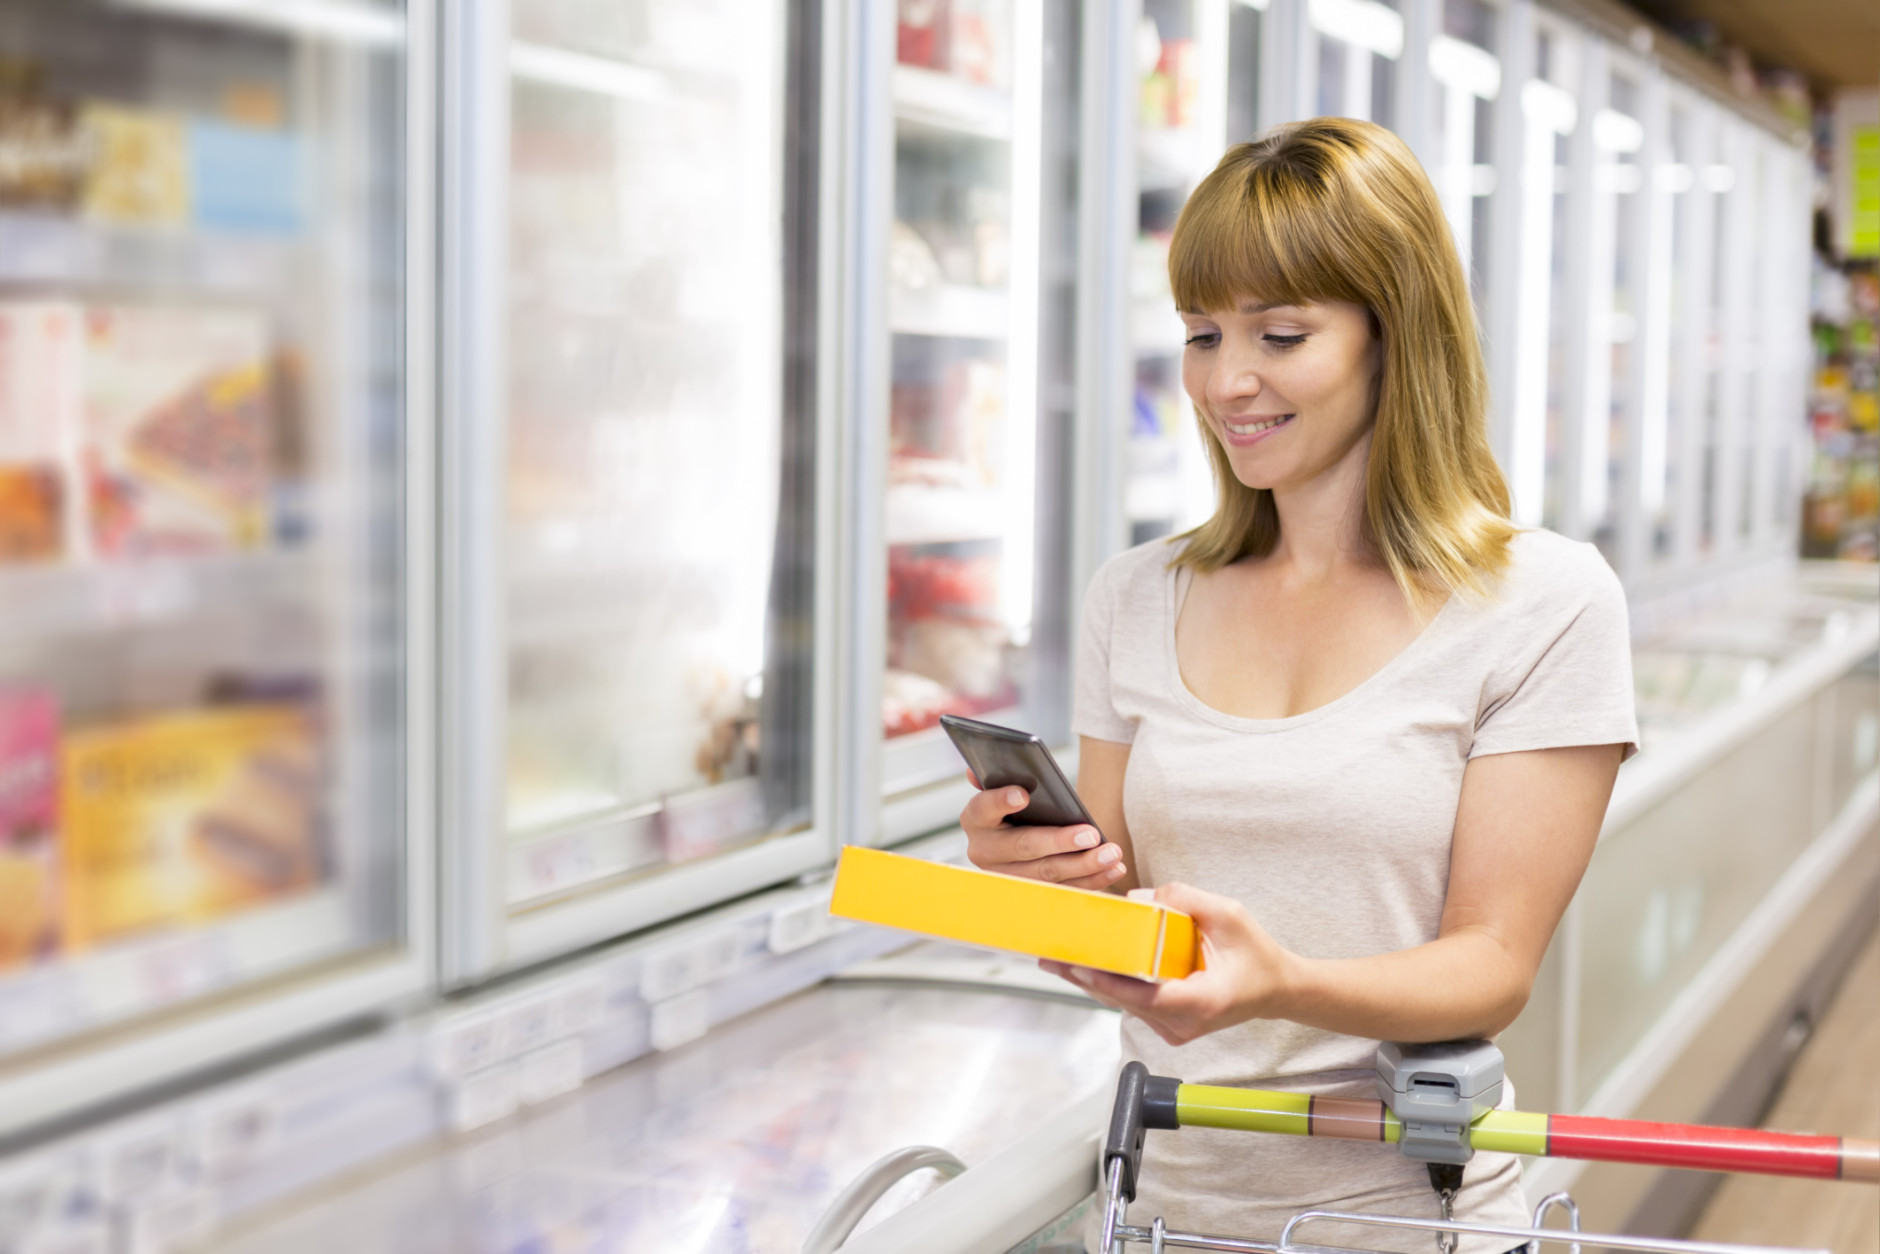 Cheerful young woman texting on mobile phone in supermarket.